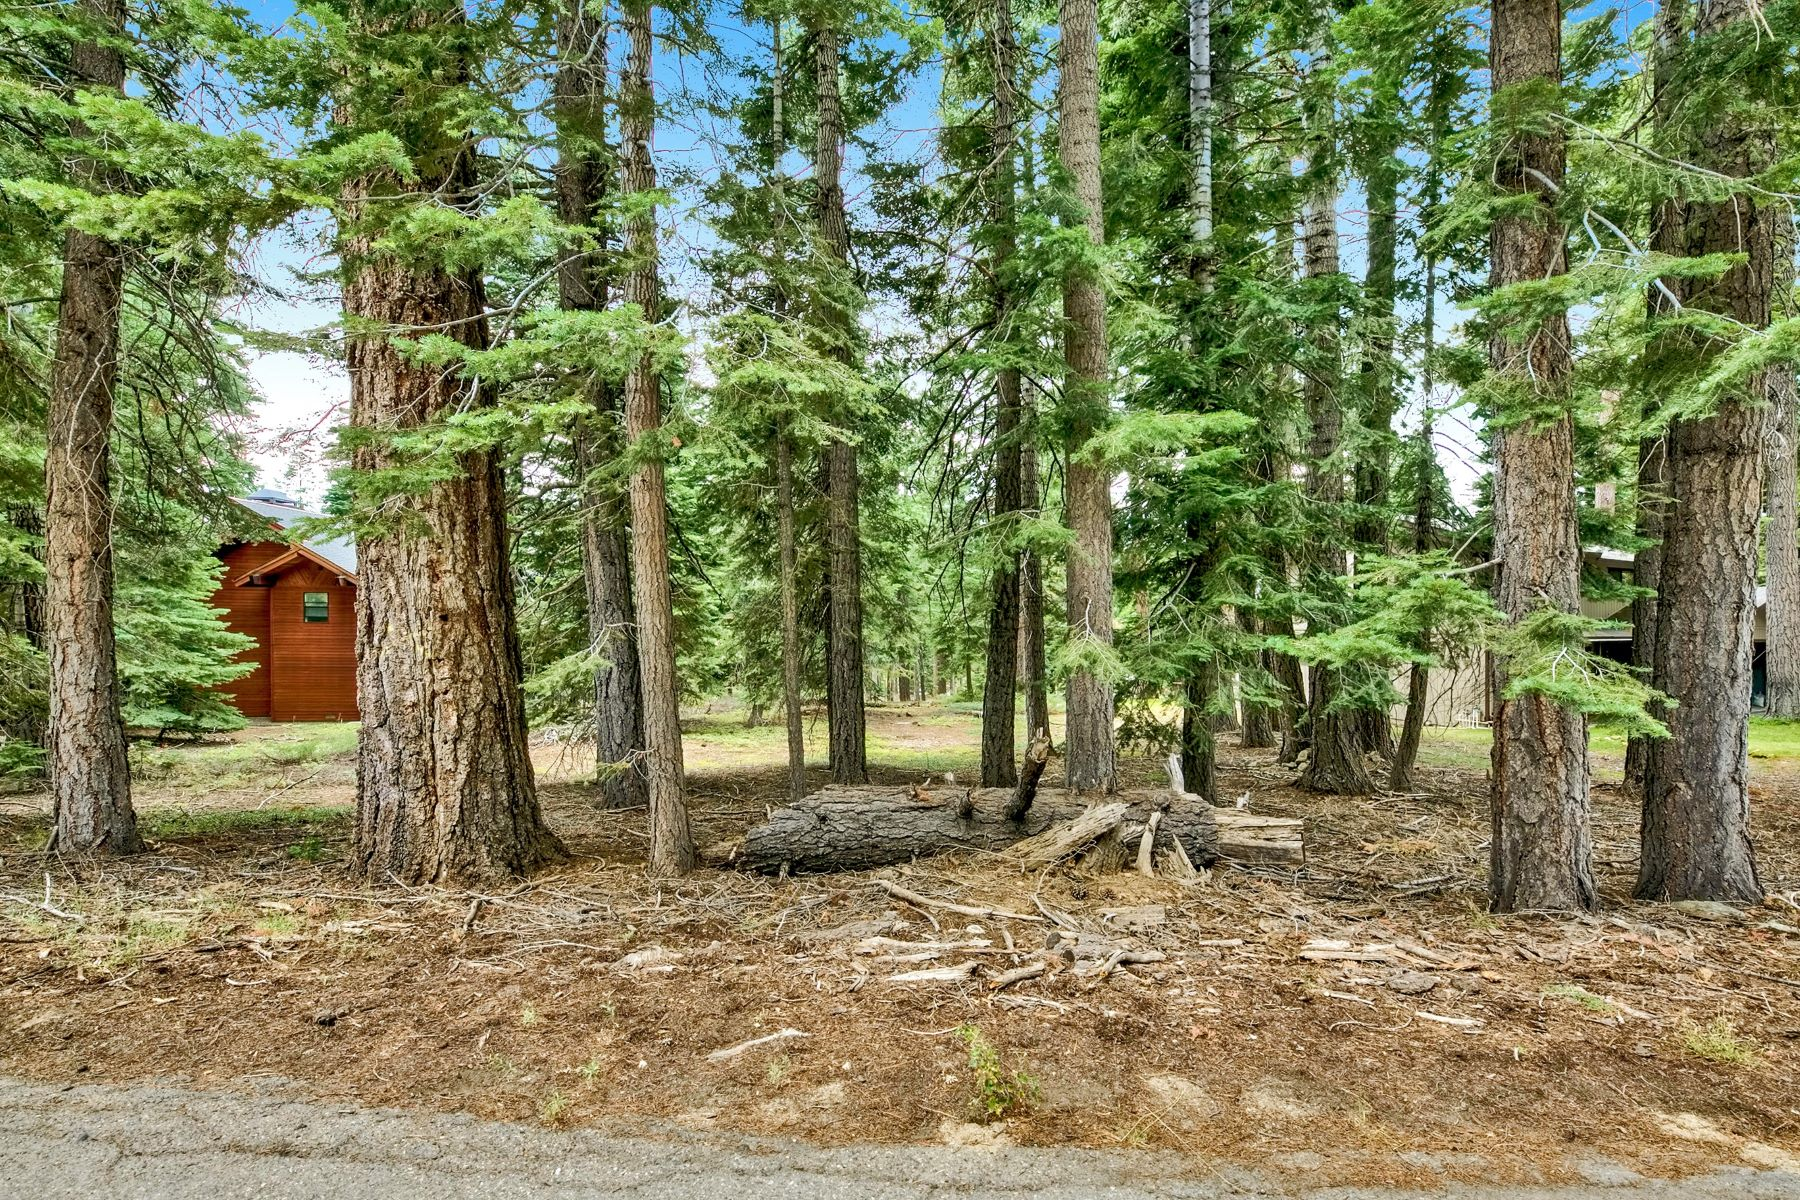 Property for Active at 2320 Dundee Cir, South Lake Tahoe, CA 96150 2320 Dundee Cir South Lake Tahoe, California 96150 United States